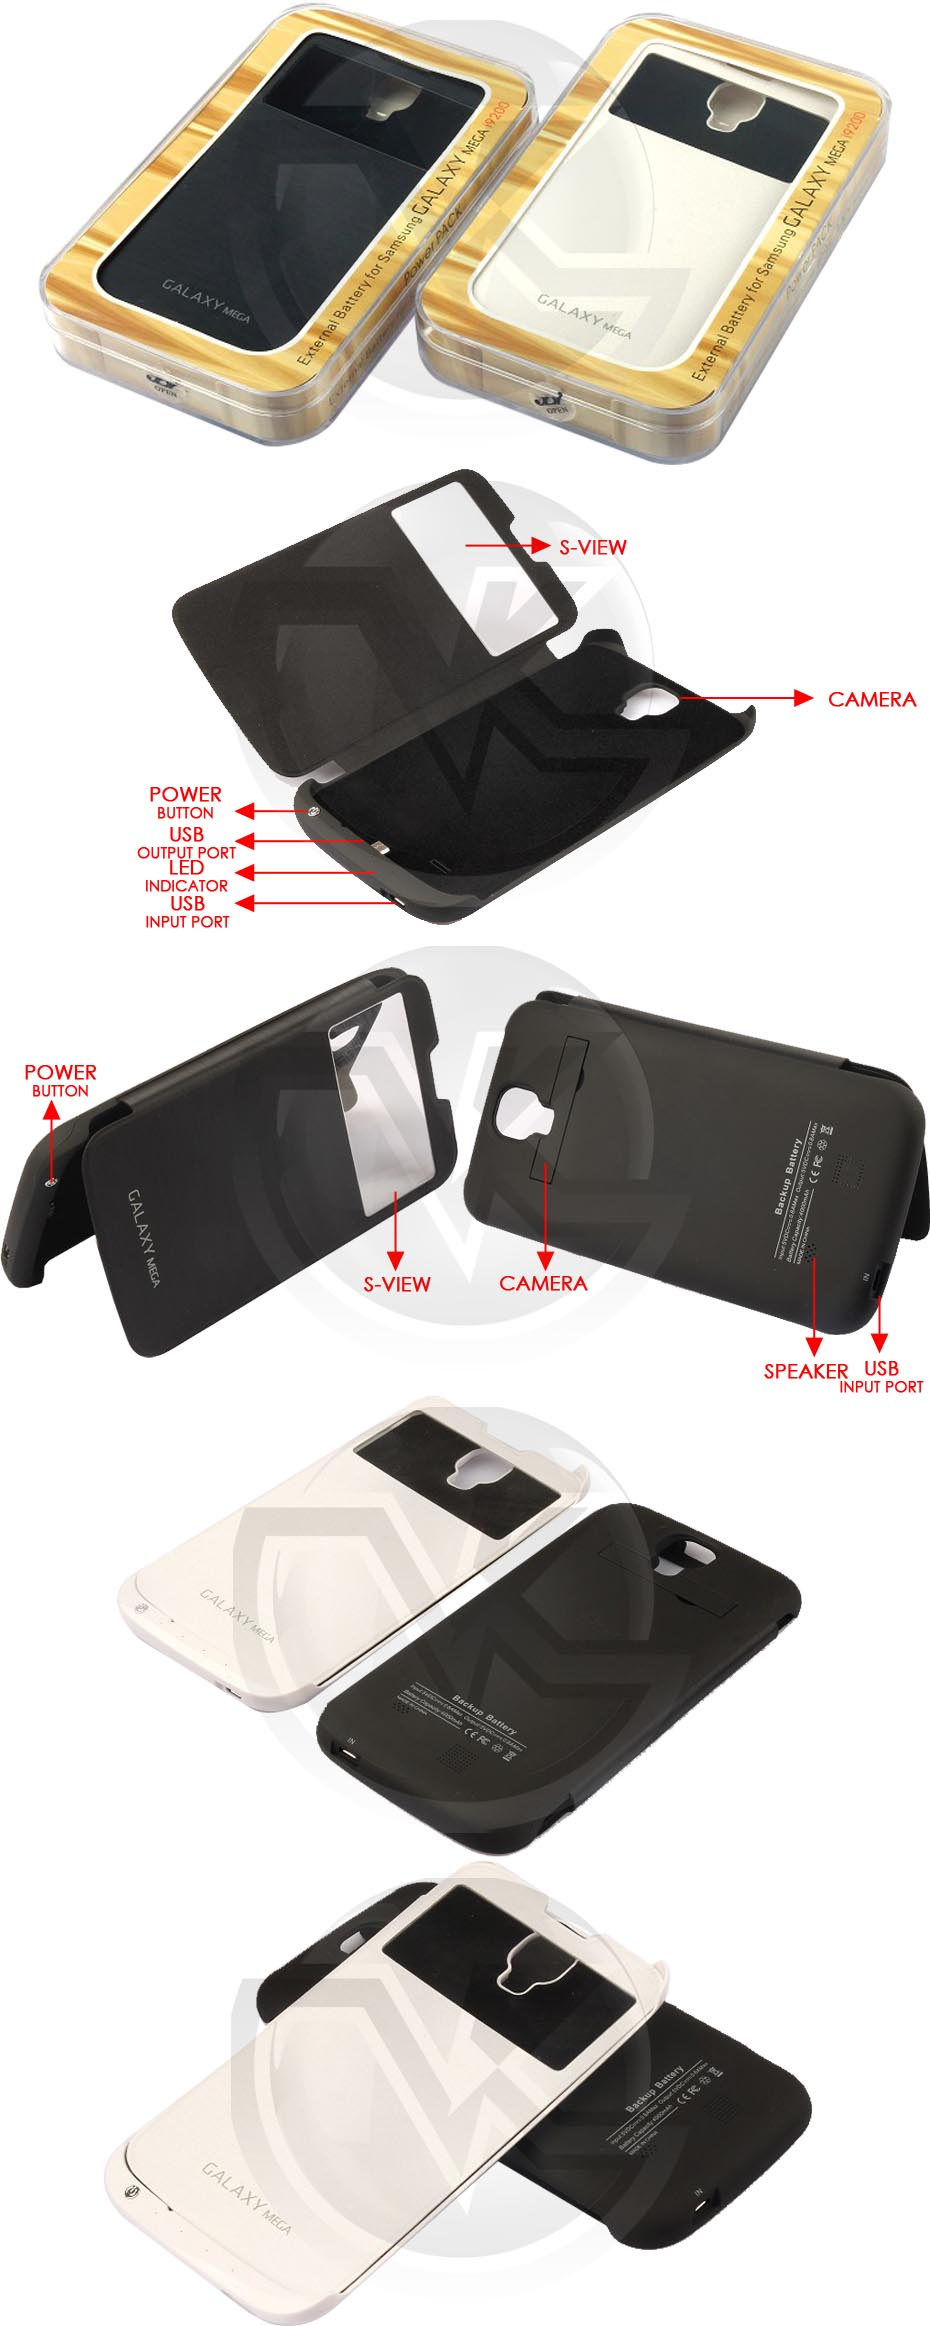 Power Case Flip Cover S-View 4000mAh for Samsung Galaxy Mega 6.3 I9200 Overview